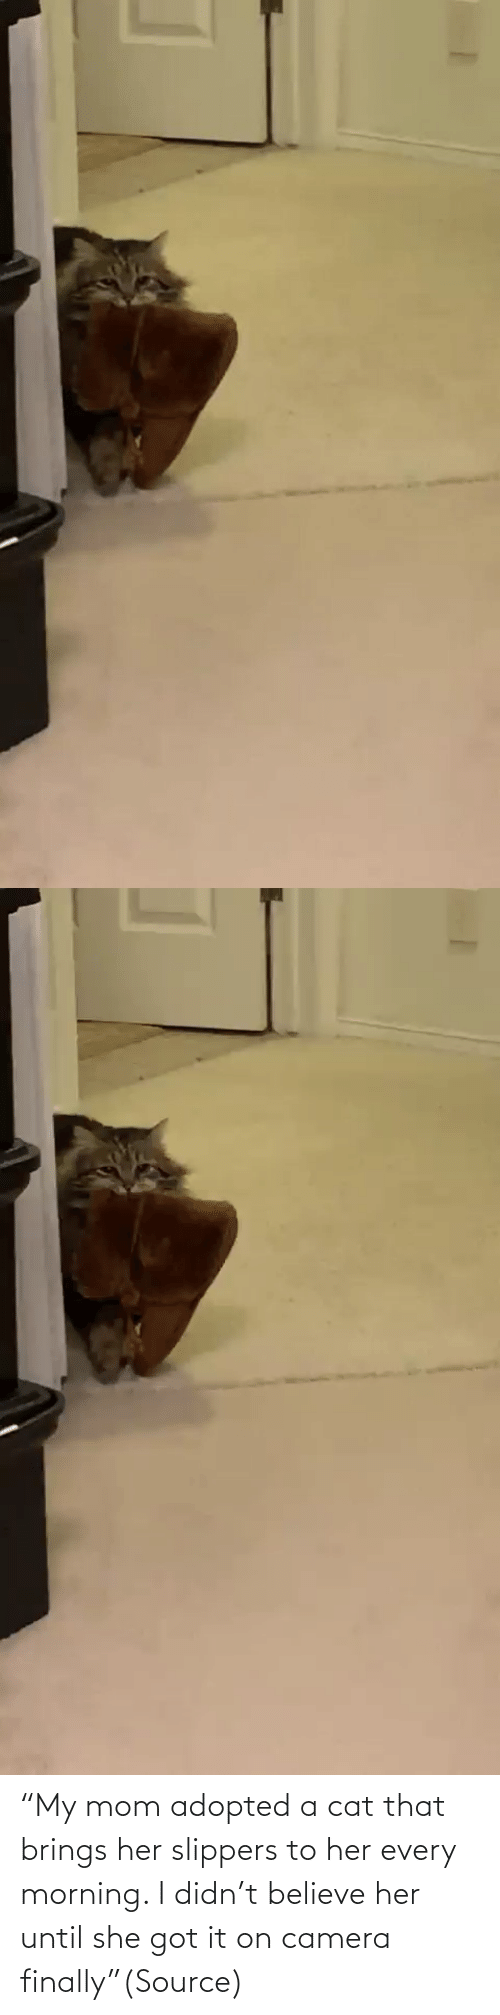 """believe: """"My mom adopted a cat that brings her slippers to her every morning. I didn't believe her until she got it on camera finally""""(Source)"""